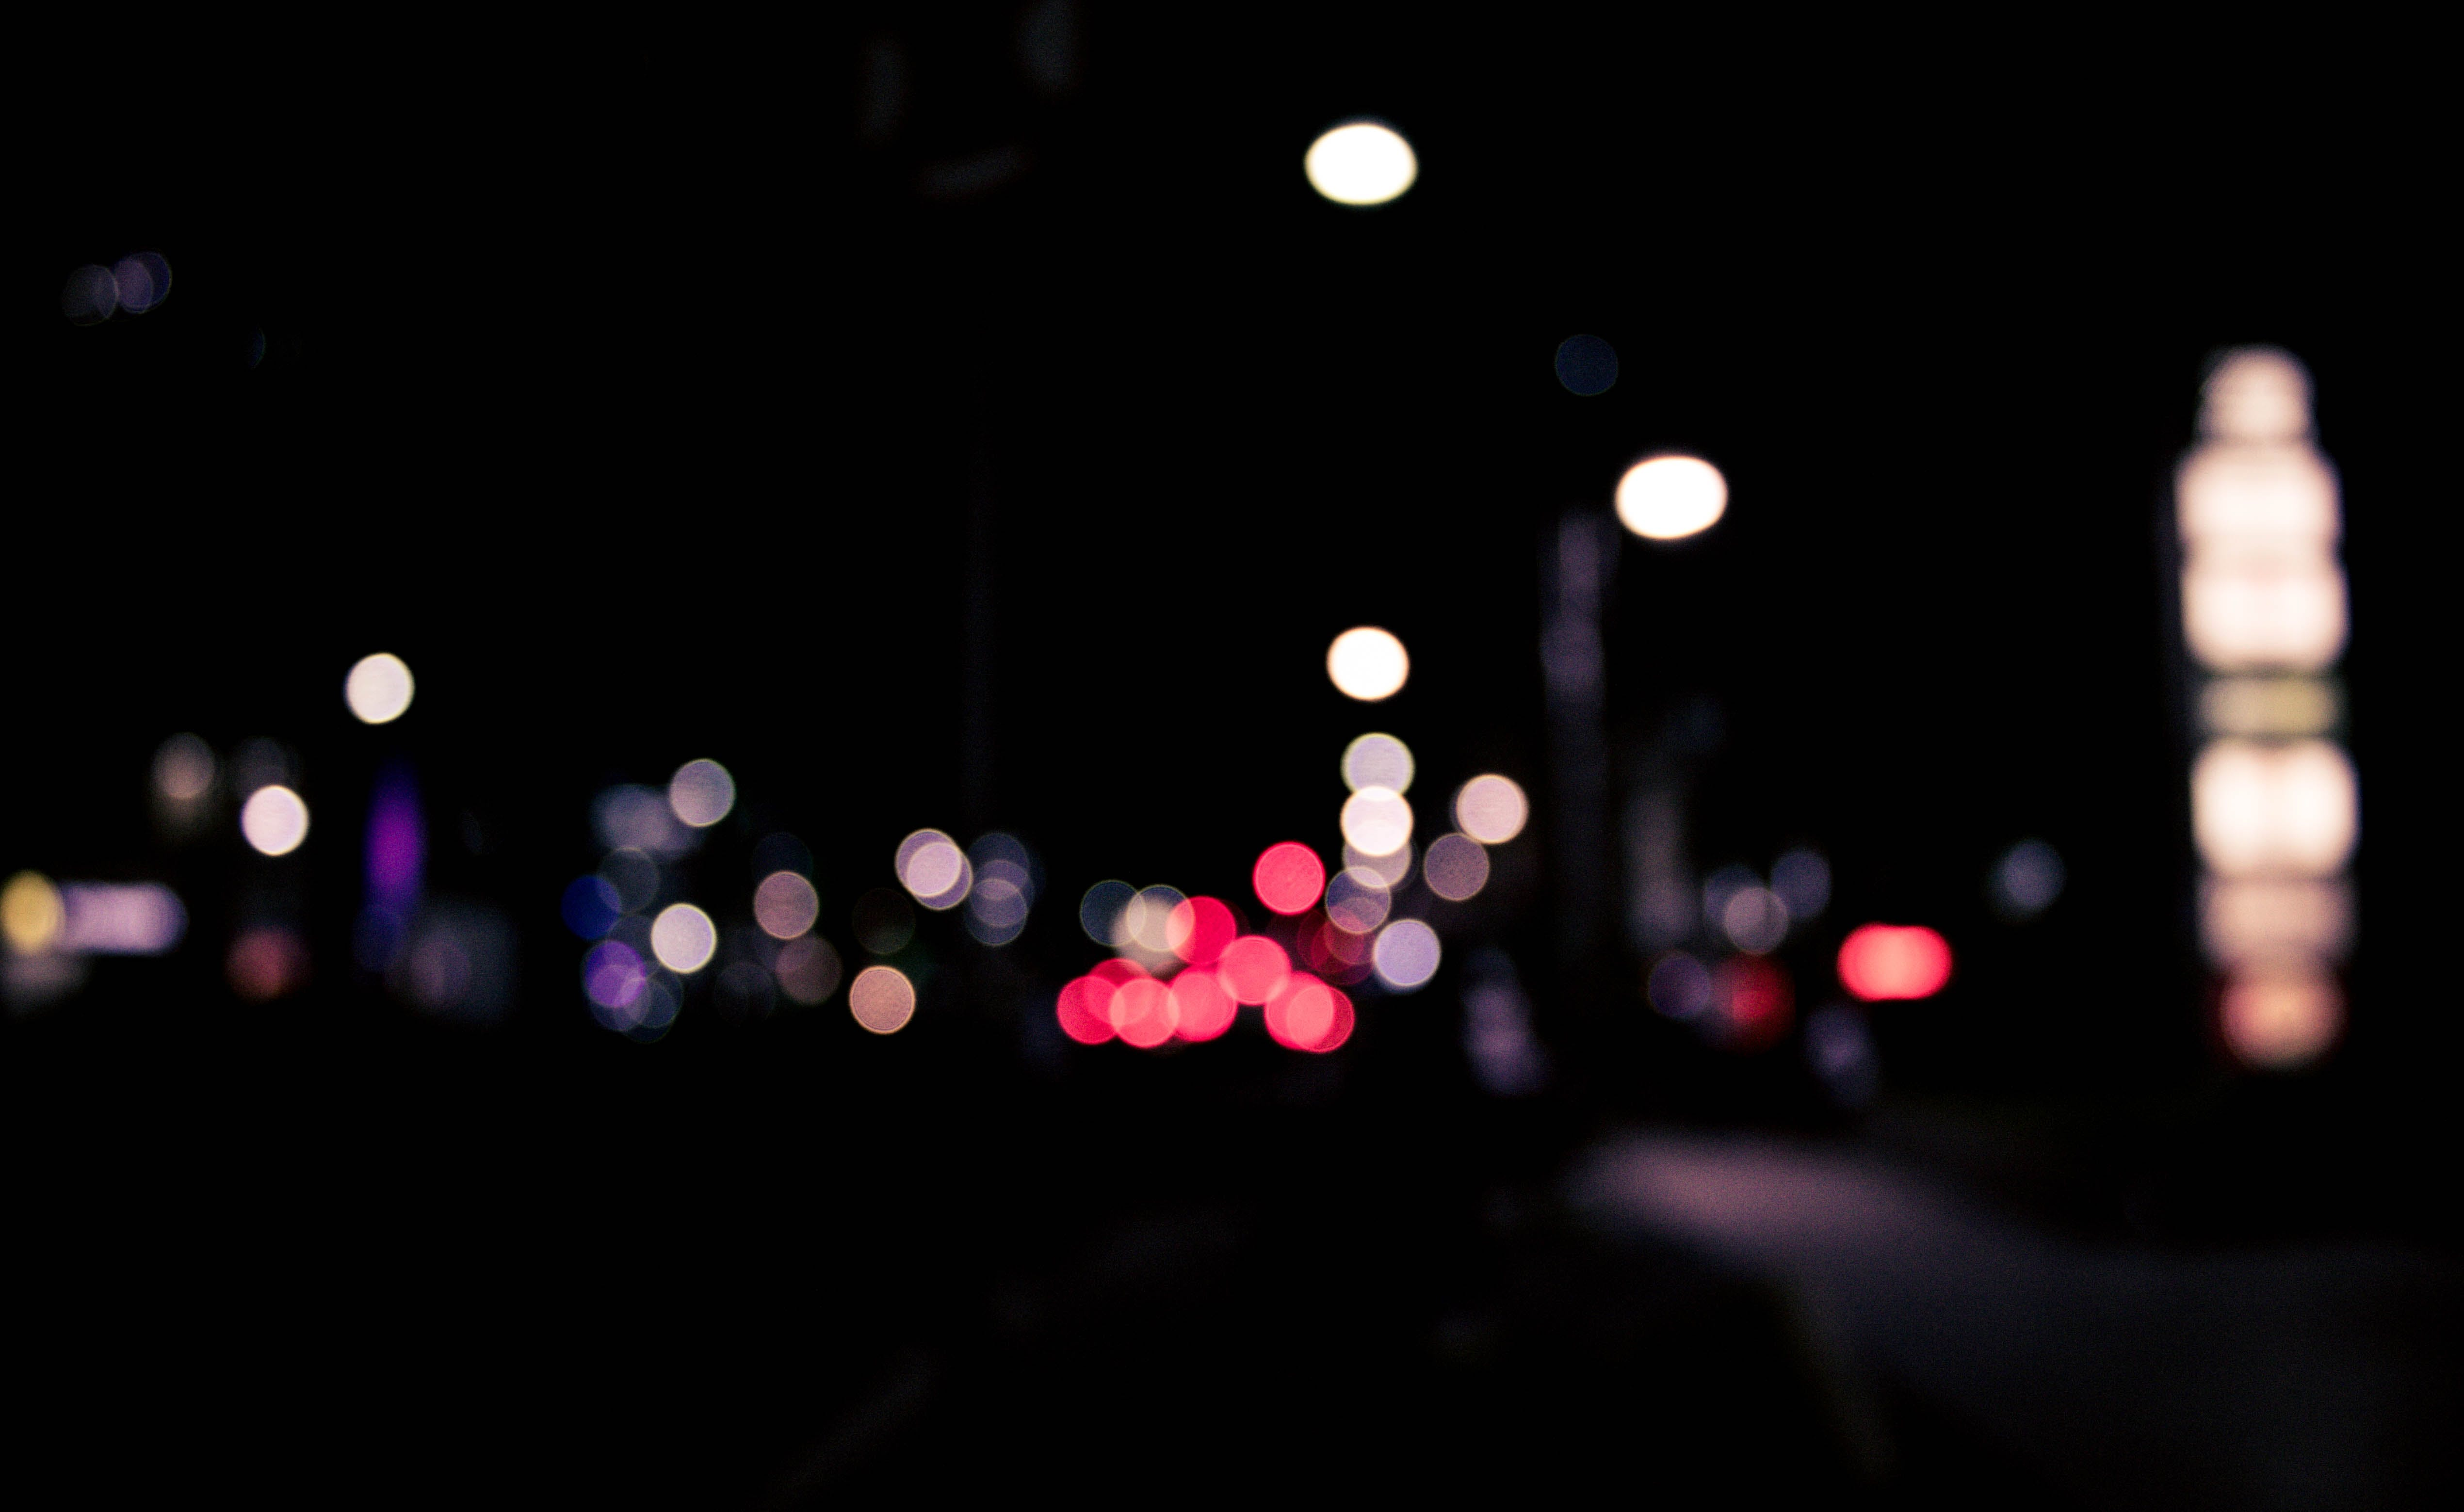 Bokeh Photography of Street